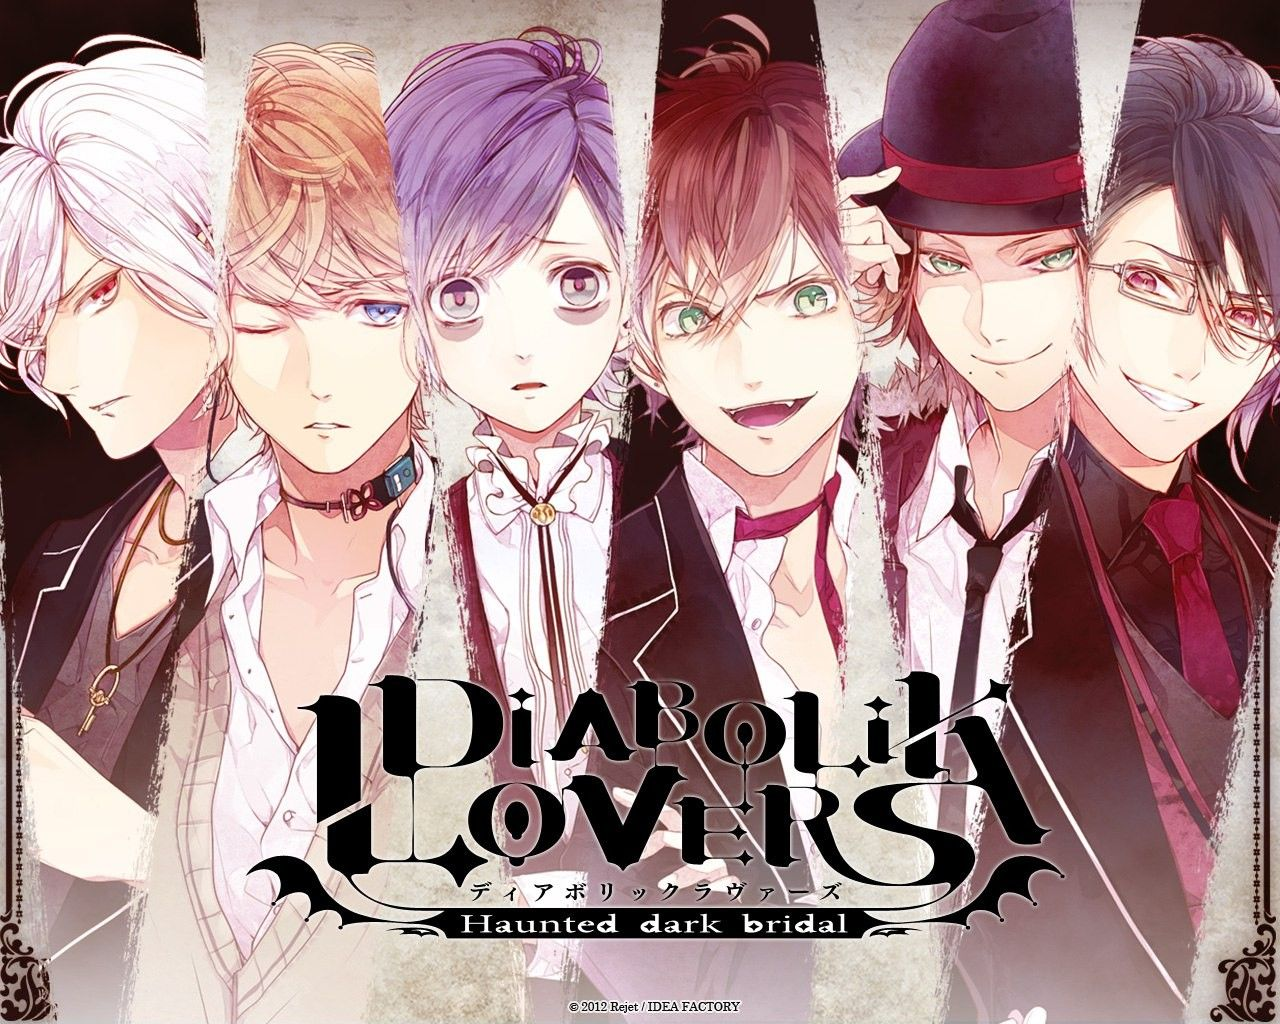 Pin by Havoc on Anime in 2020 Diabolik lovers episodes